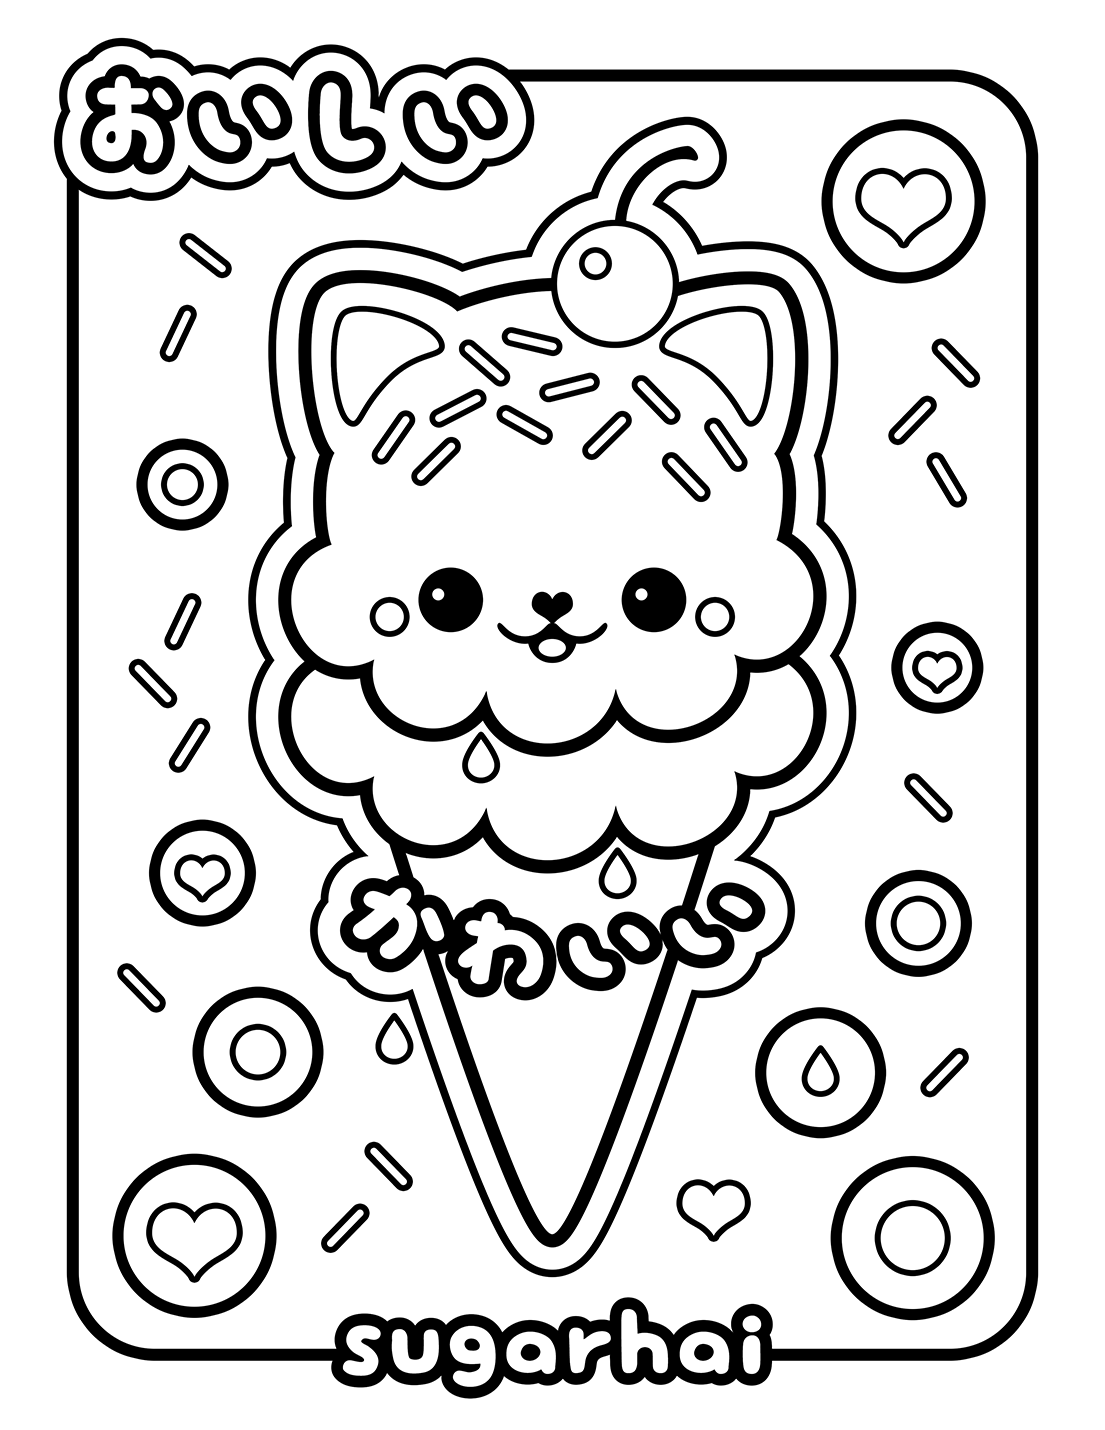 Free Ice Cream Cat Coloring Page Cupcake Coloring Pages Ice Cream Coloring Pages Free Kids Coloring Pages